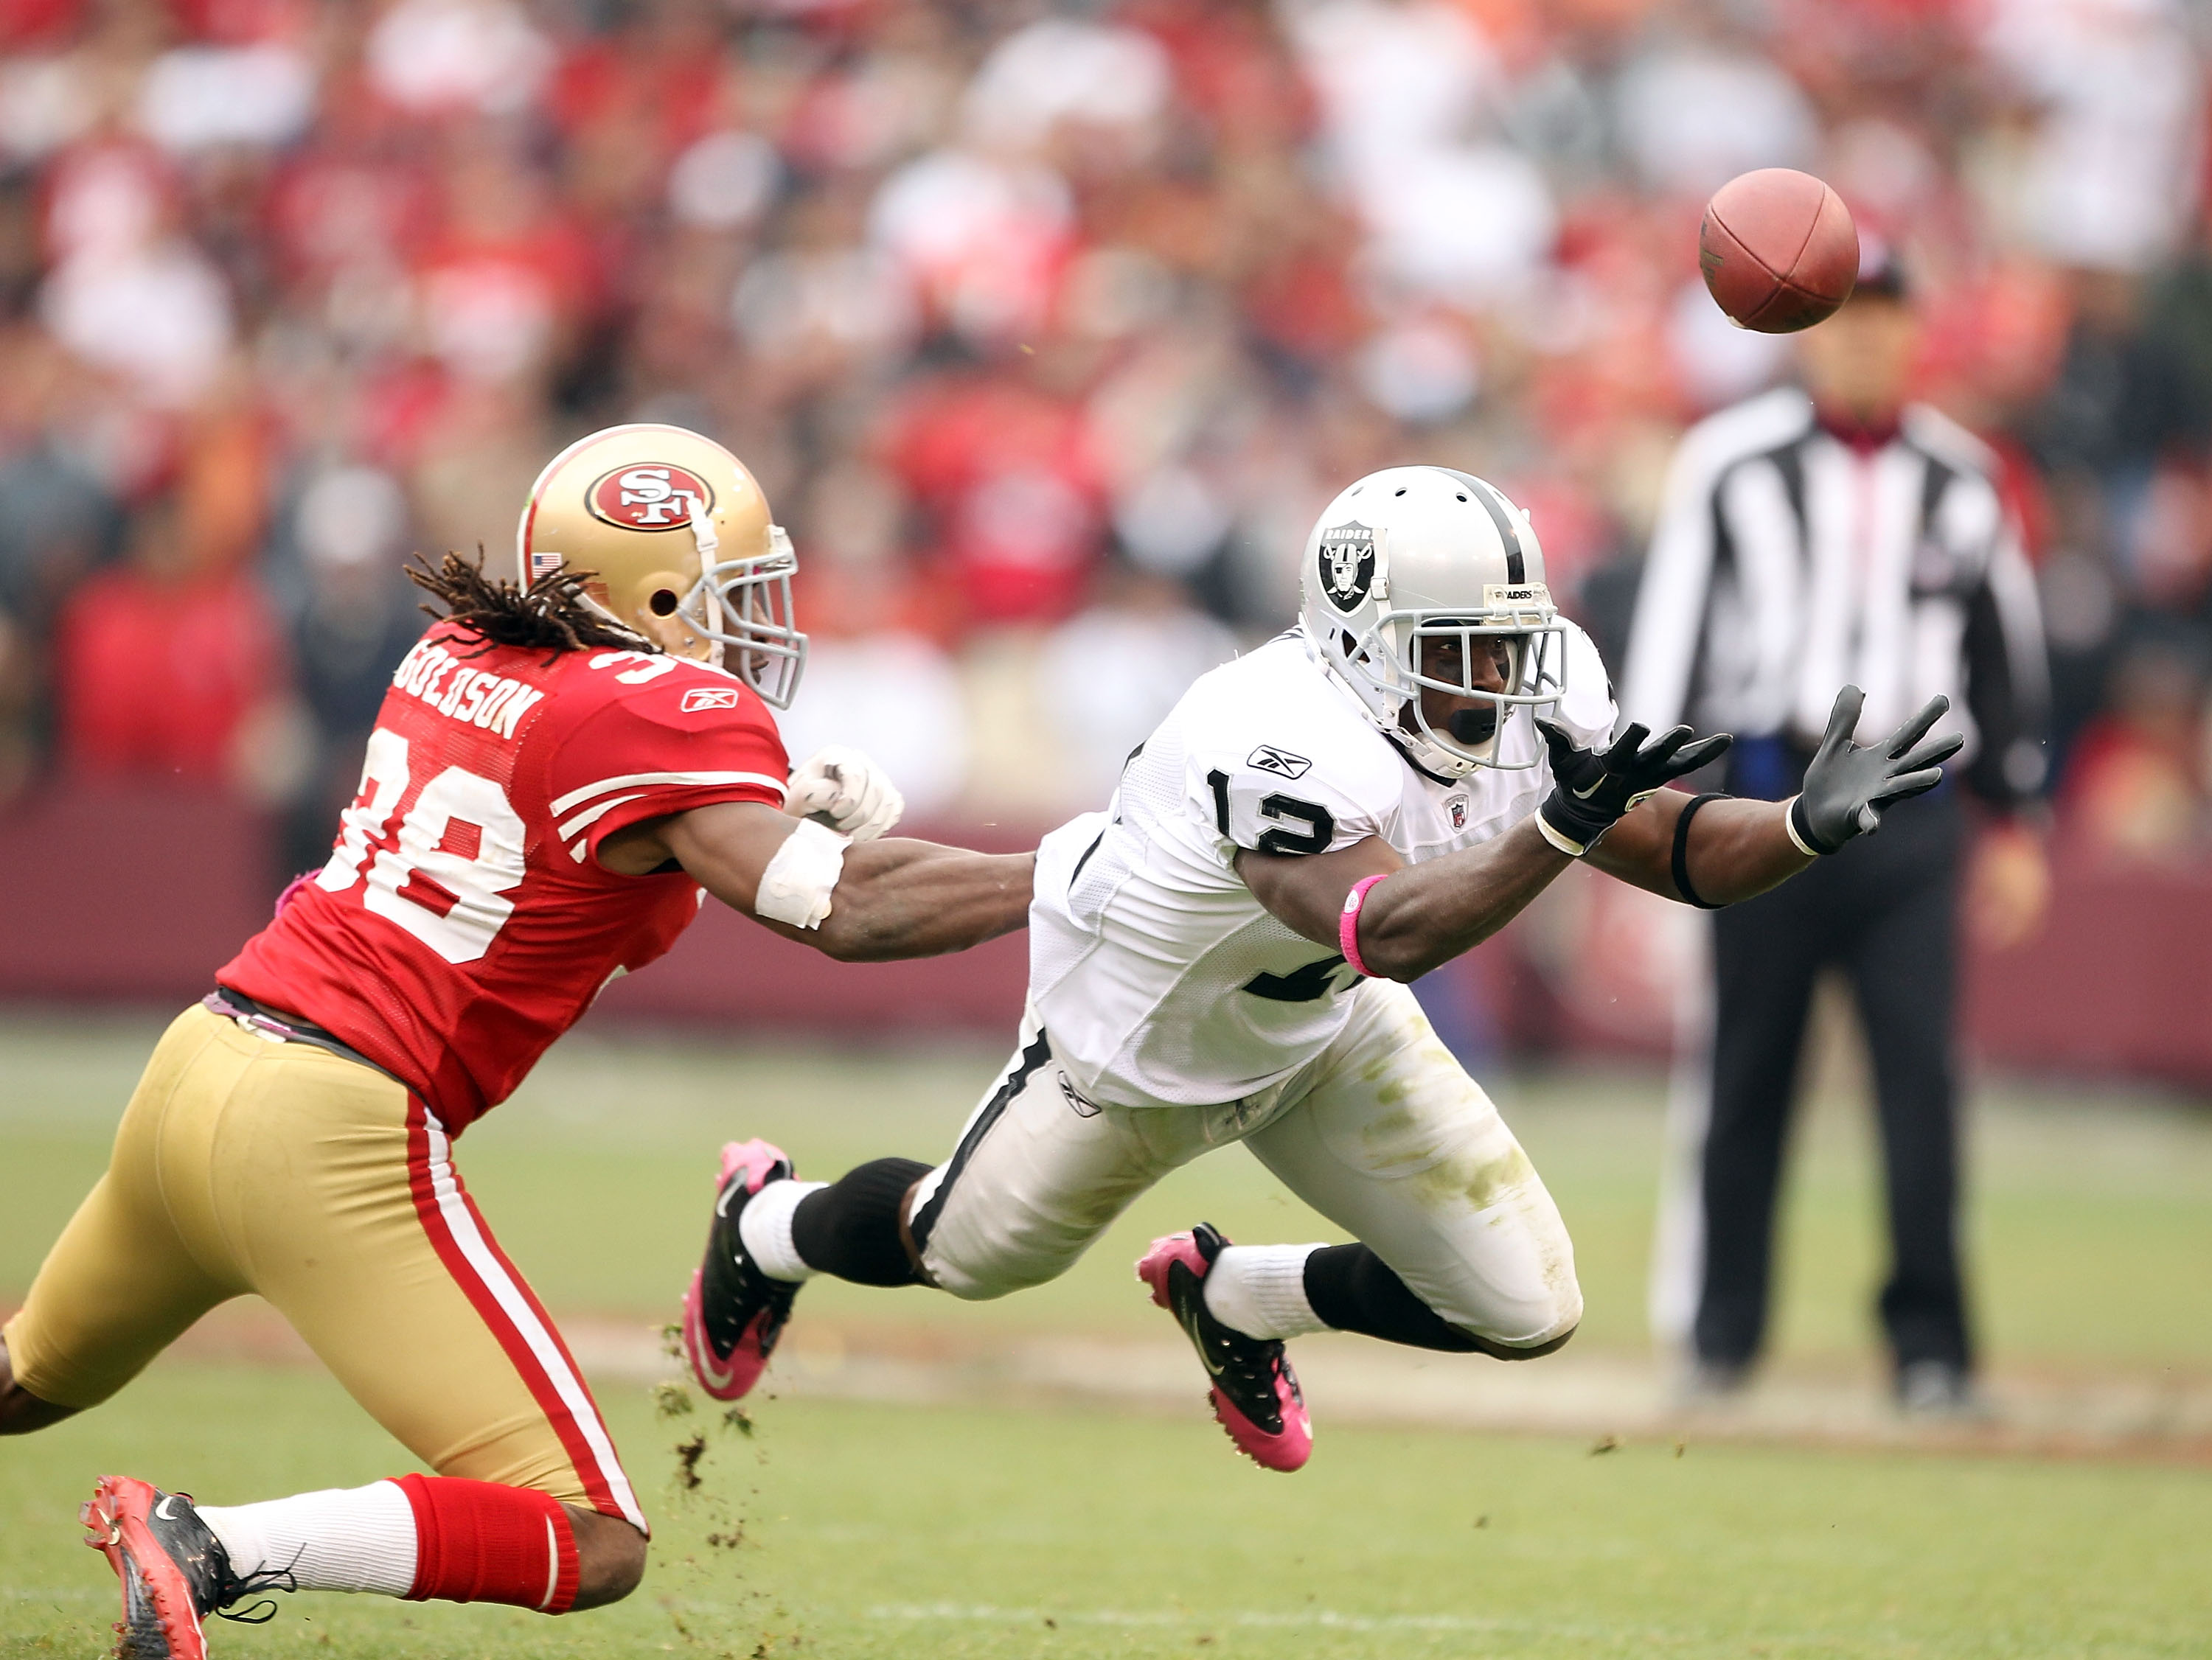 No touchdowns in the redzone for Oakland...AGAIN!